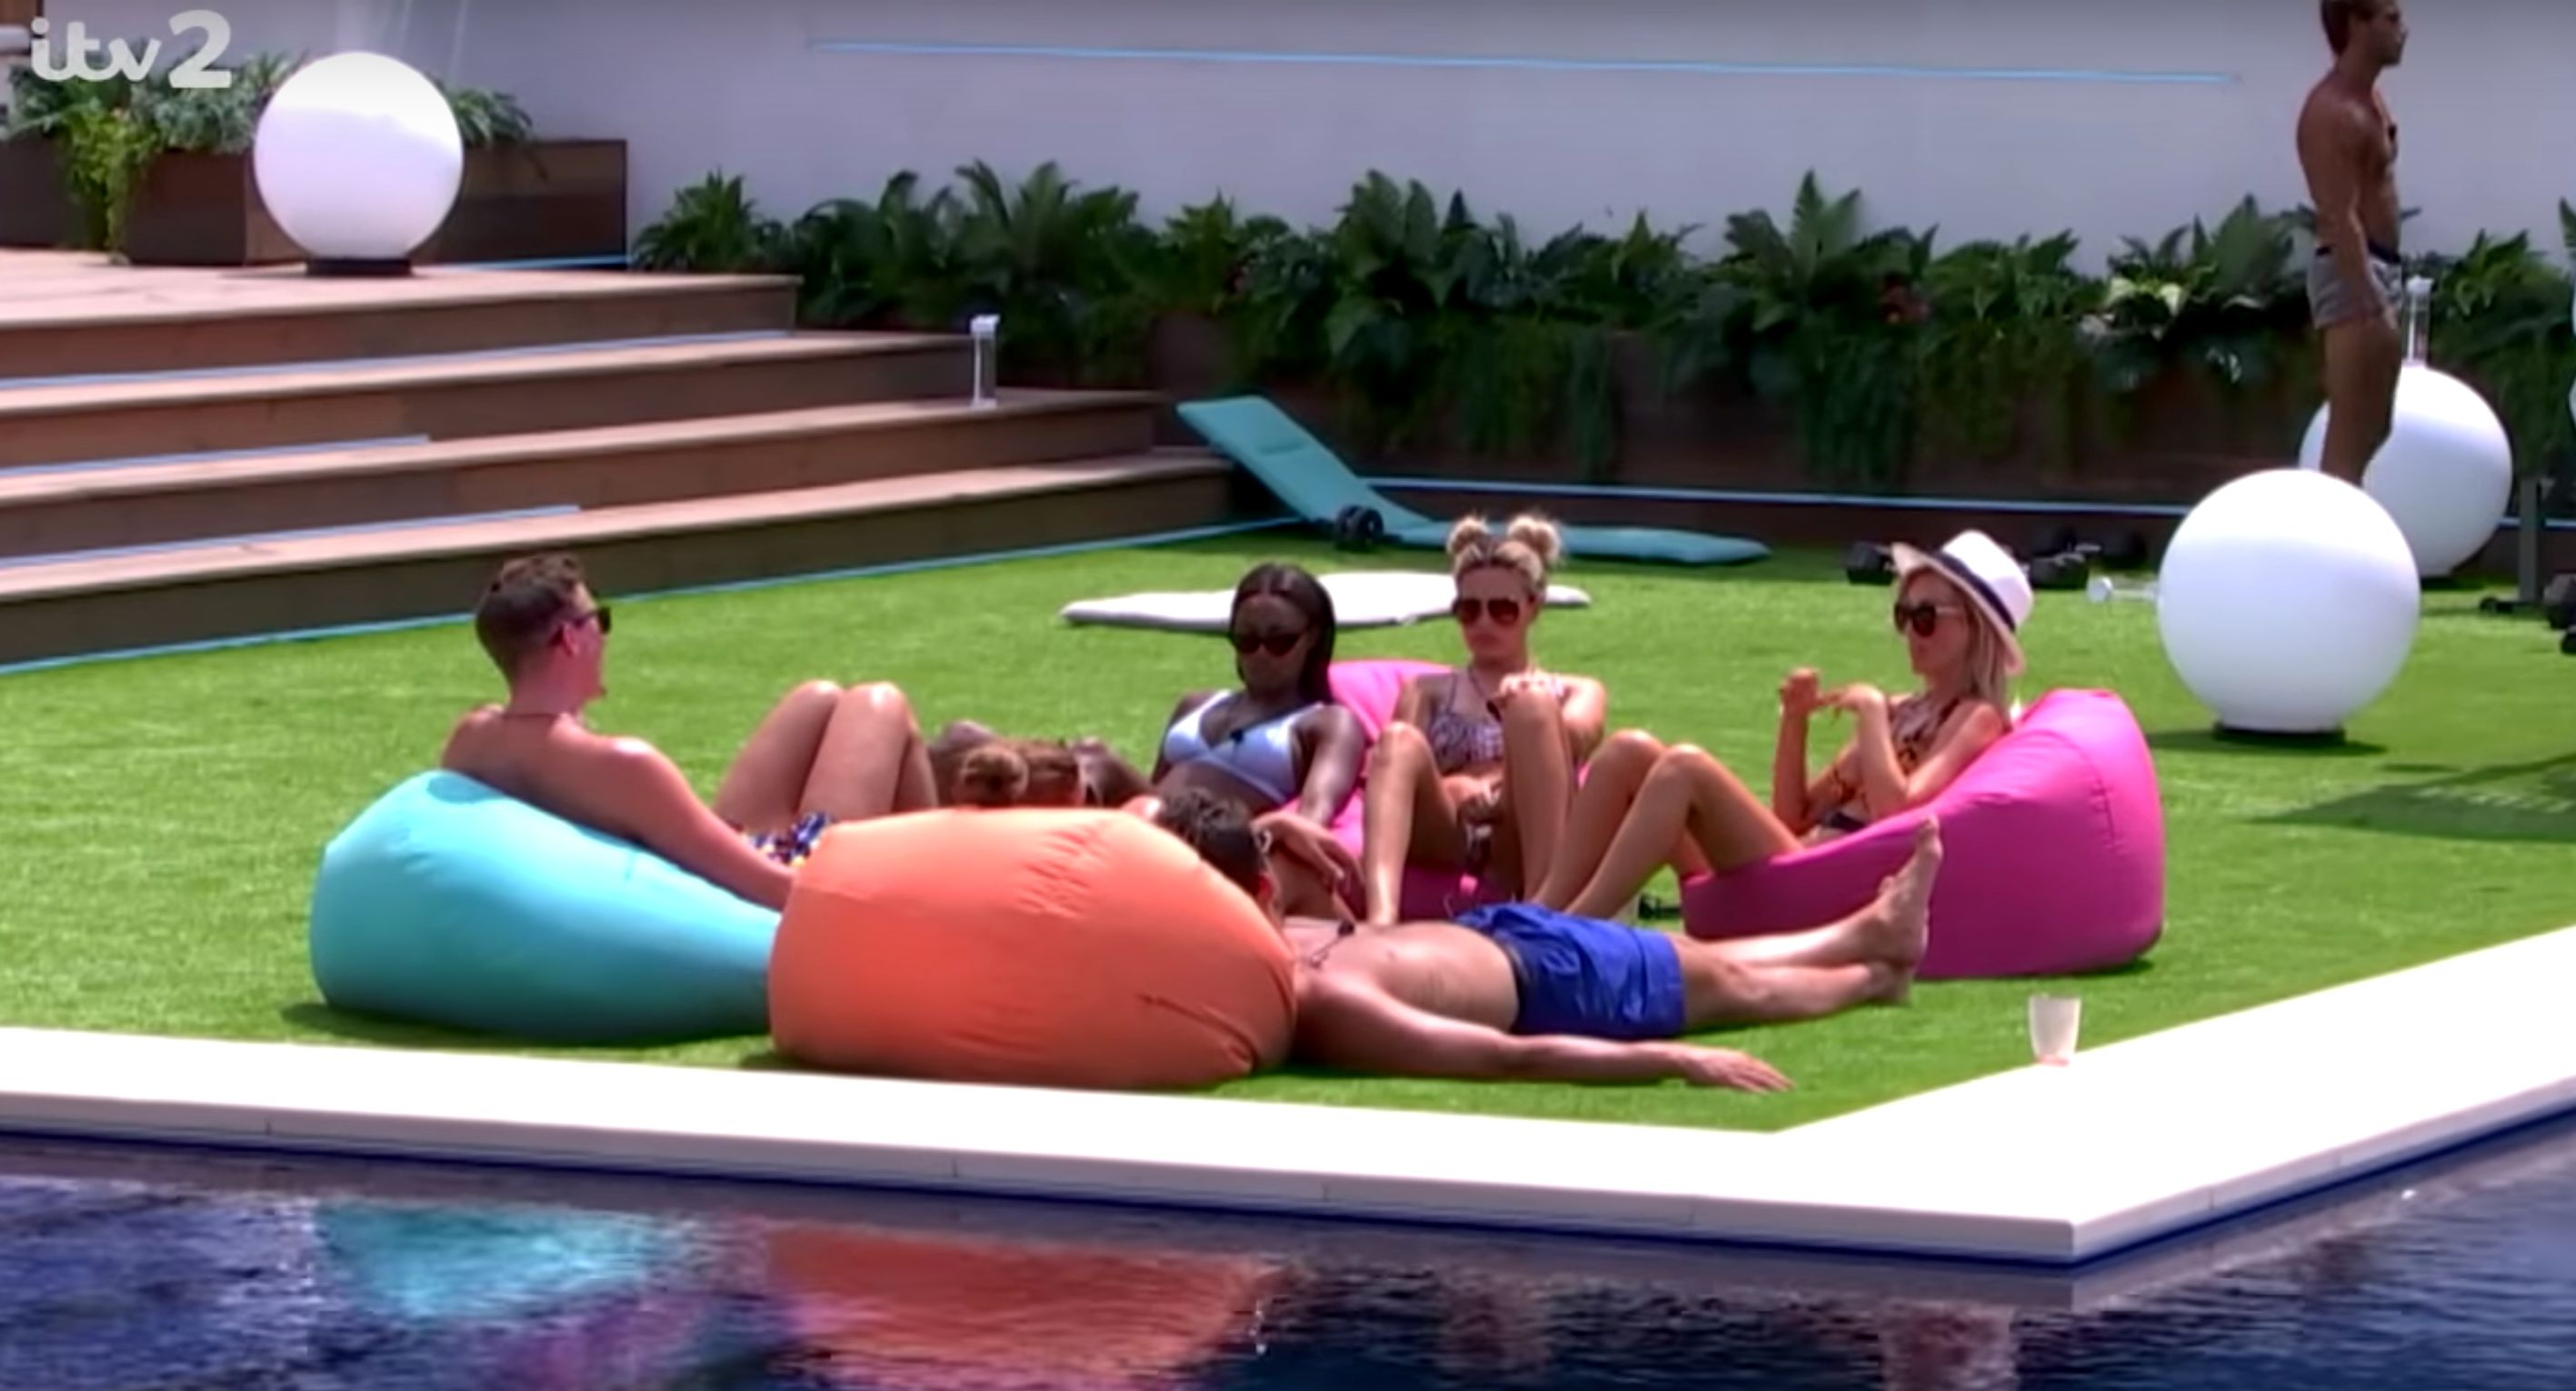 Should Cosmetic Surgery Ads Be Banned During 'Love Island'? Here's Why Health Experts Think So